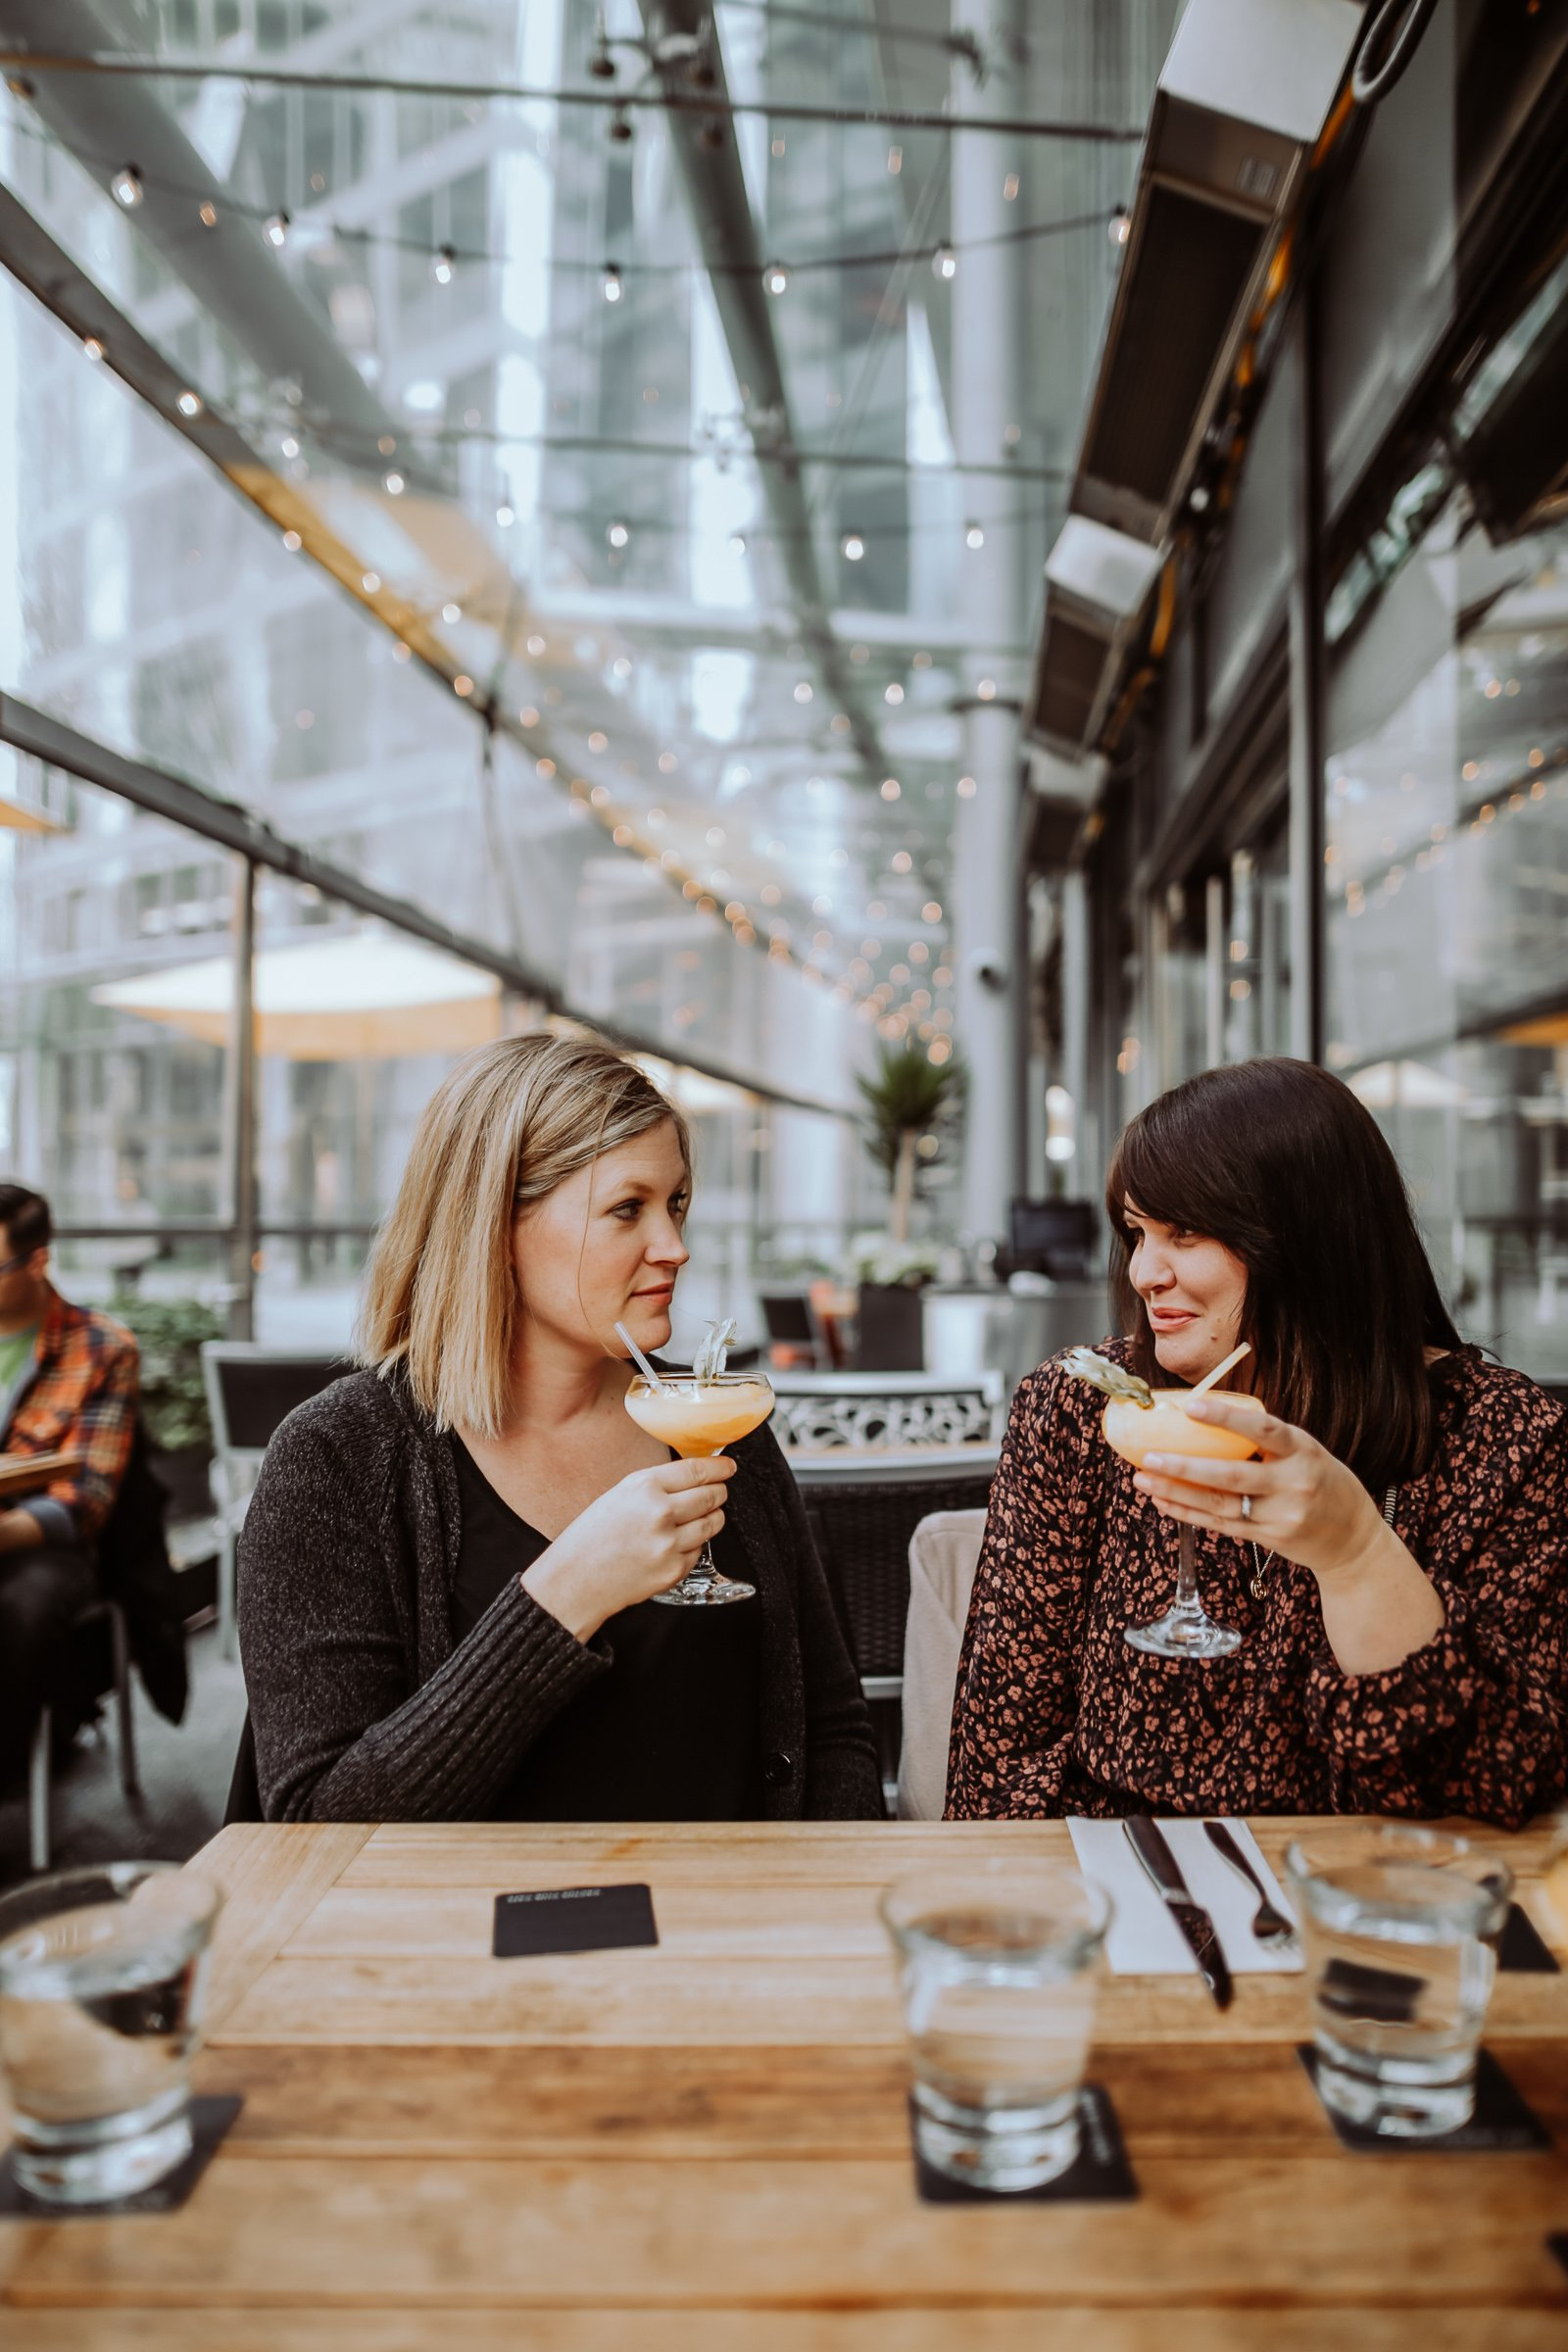 Bad Moms on the loose. Our experience at the EXchange Hotel in Downtown Vancouver as well, Our experience at the Life After Birth Event with Knix, Jillian Harris and Sarah Nicole from the Birds Papaya.